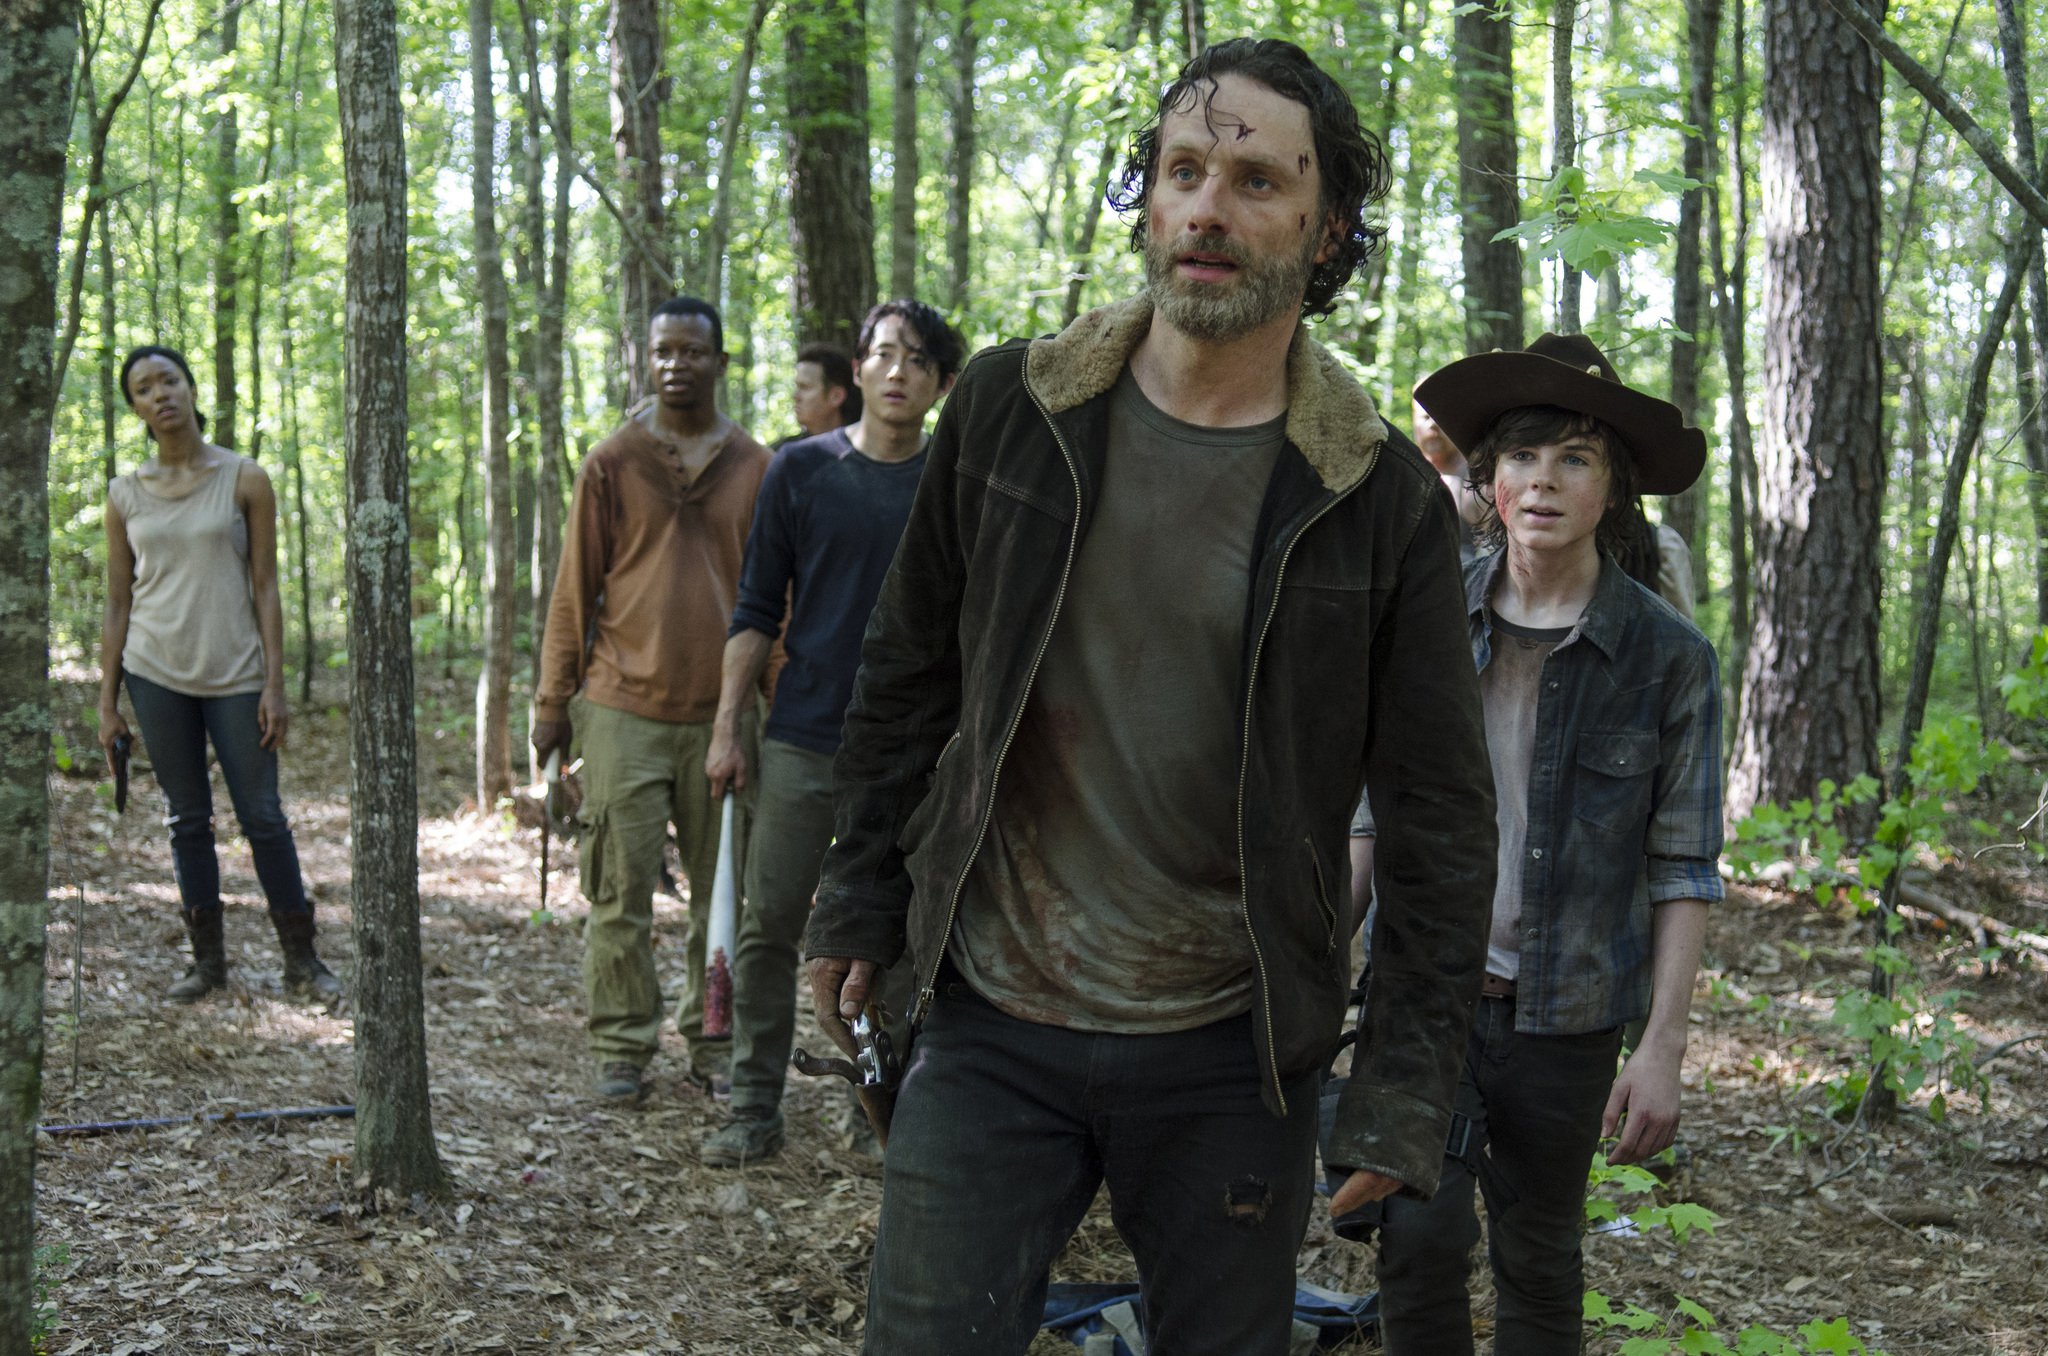 7 Netflix series to watch while we wait for The Walking Dead season 10